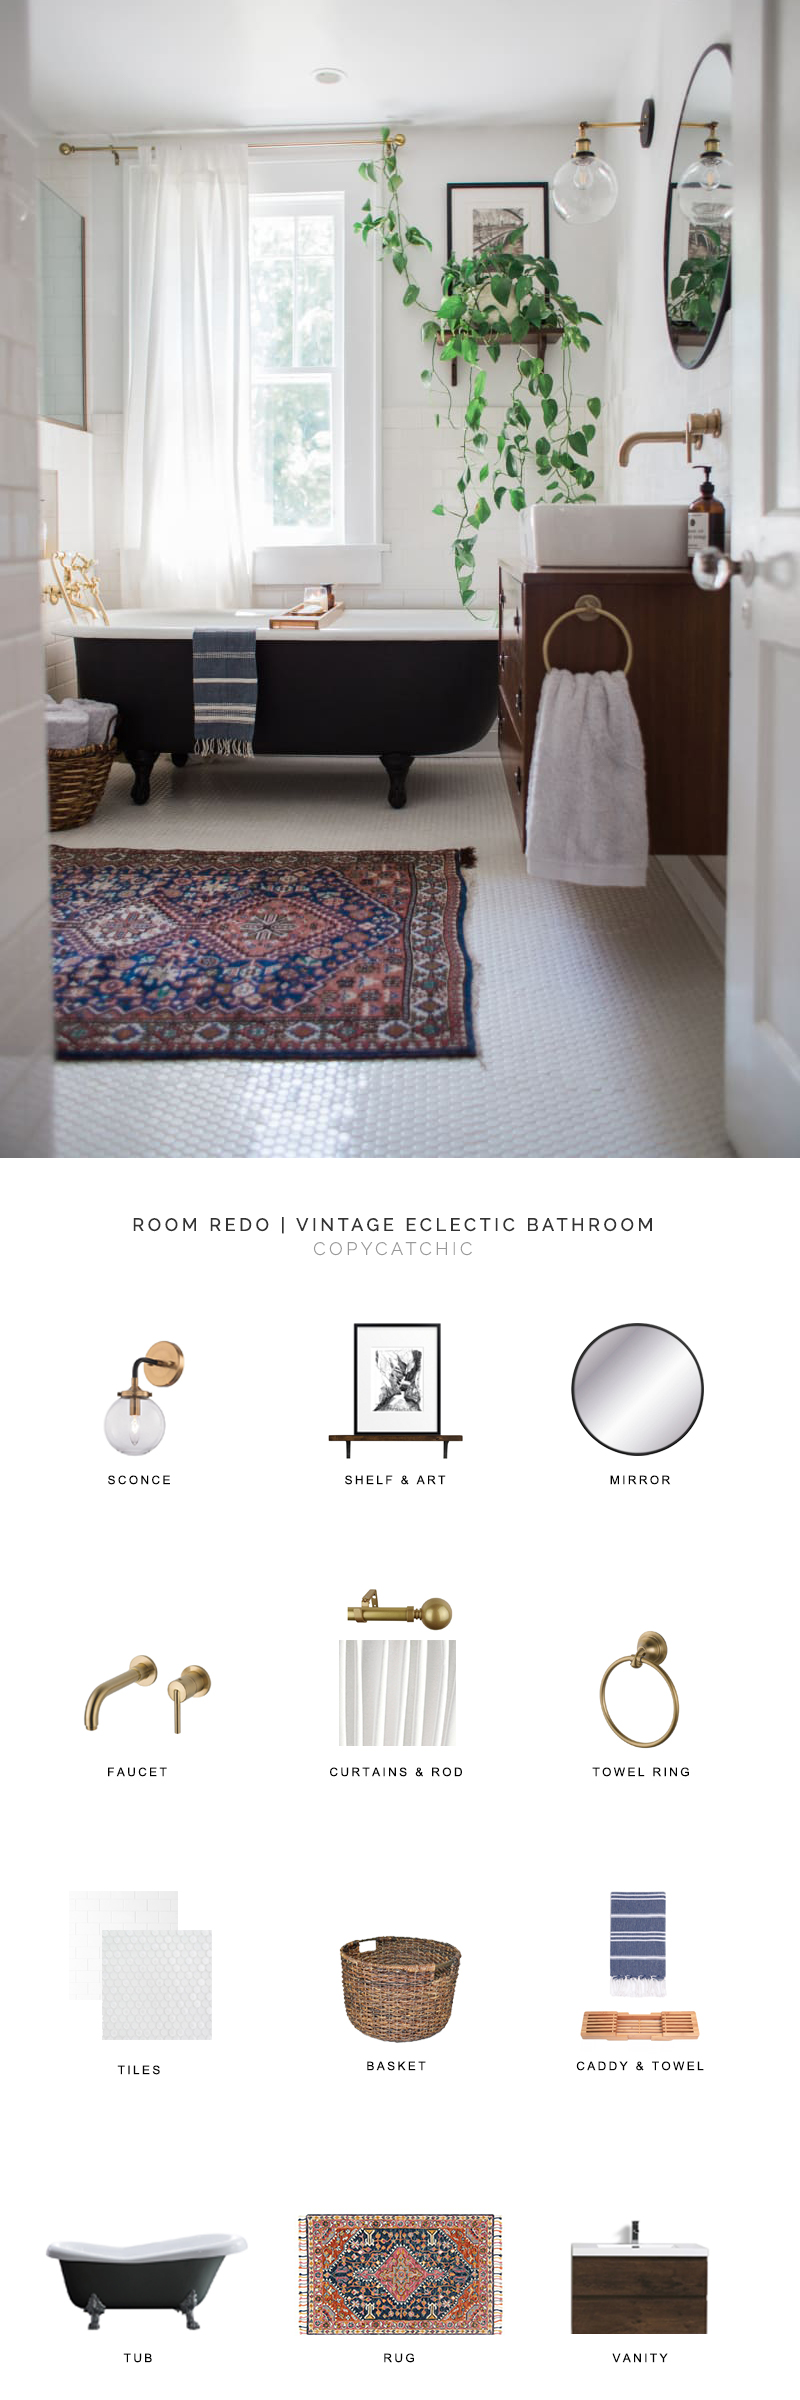 This vintage eclectic bathroom by Emily Netz gets recreated for less by copycatchic luxe living for less budget home decor and design daily finds, home trends, sales, budget travel and room redos